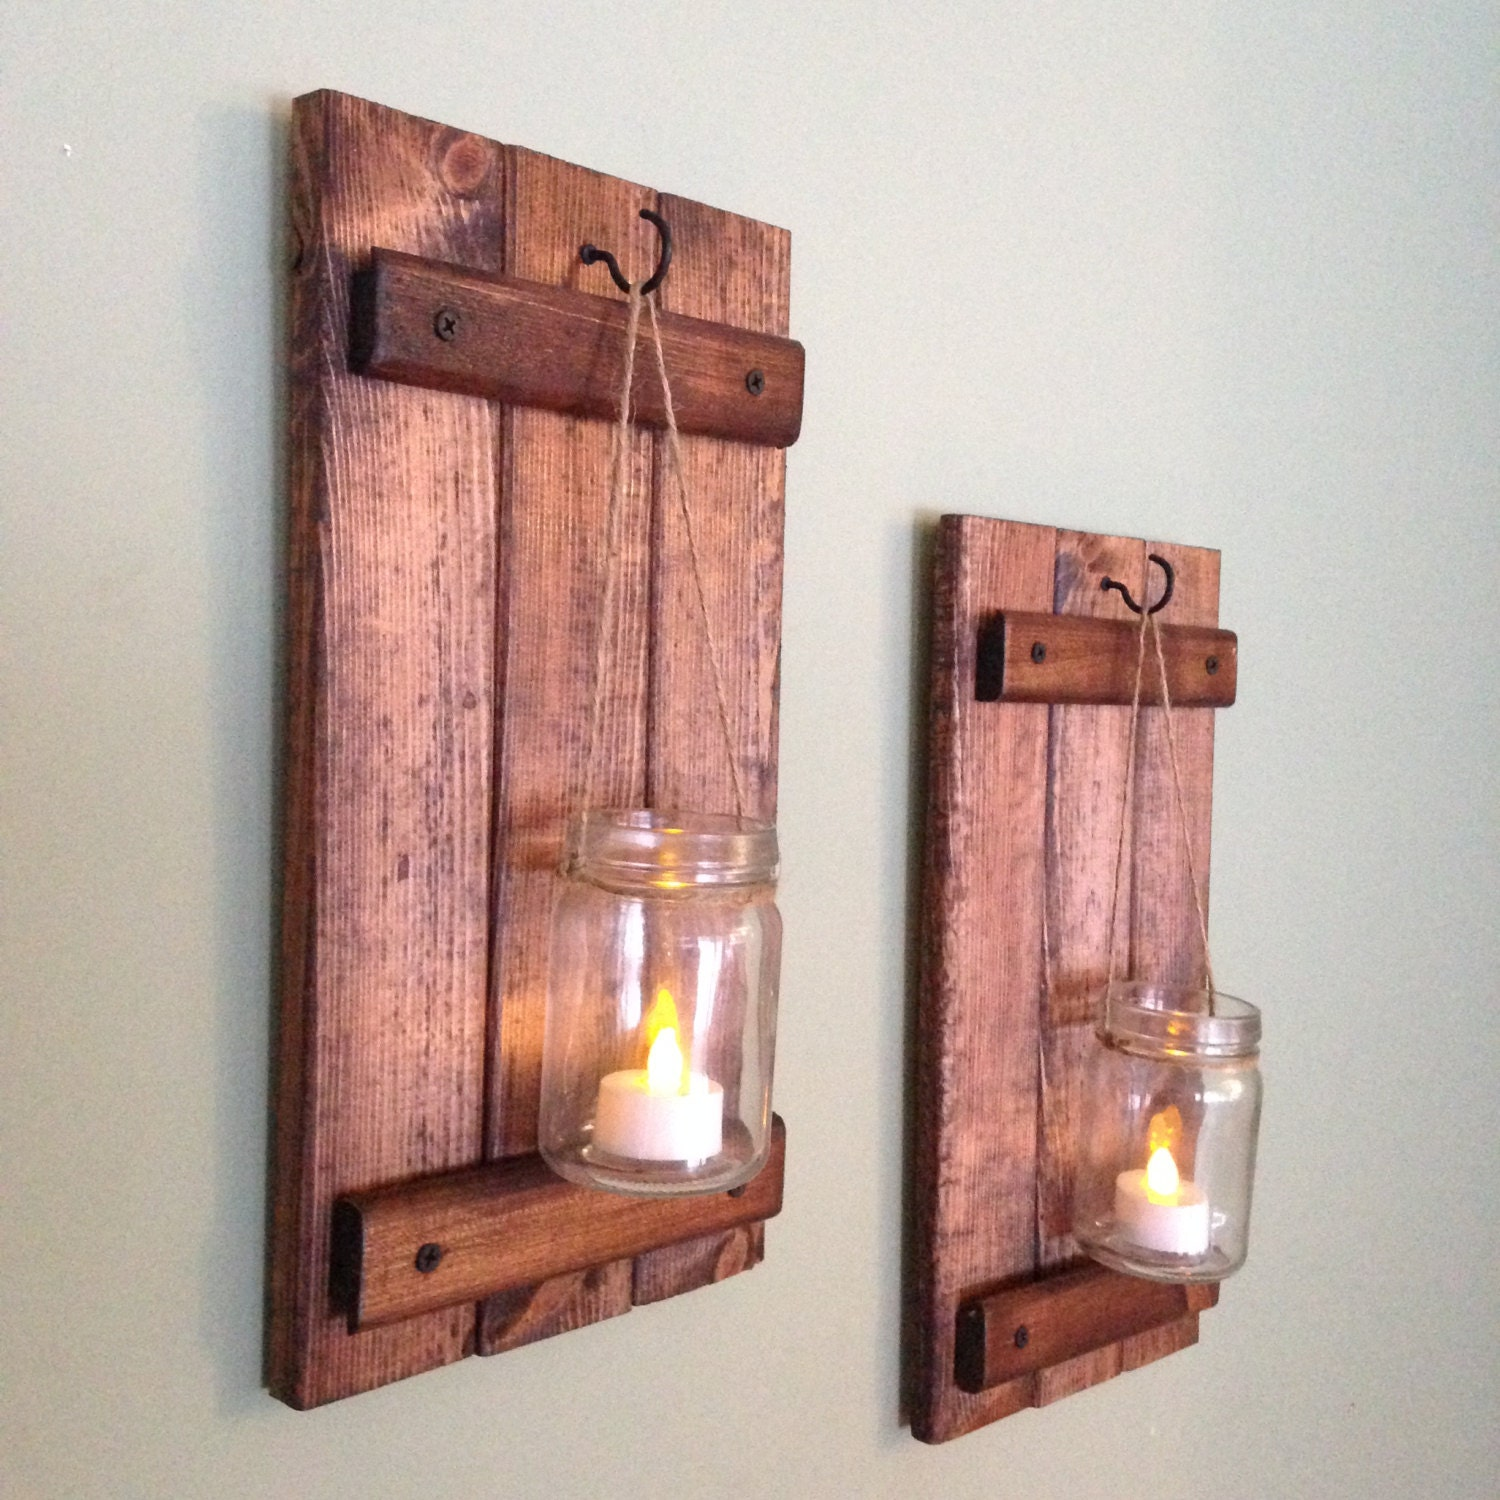 Rustic wall decor wooden candle holder rustic mason jar zoom amipublicfo Image collections